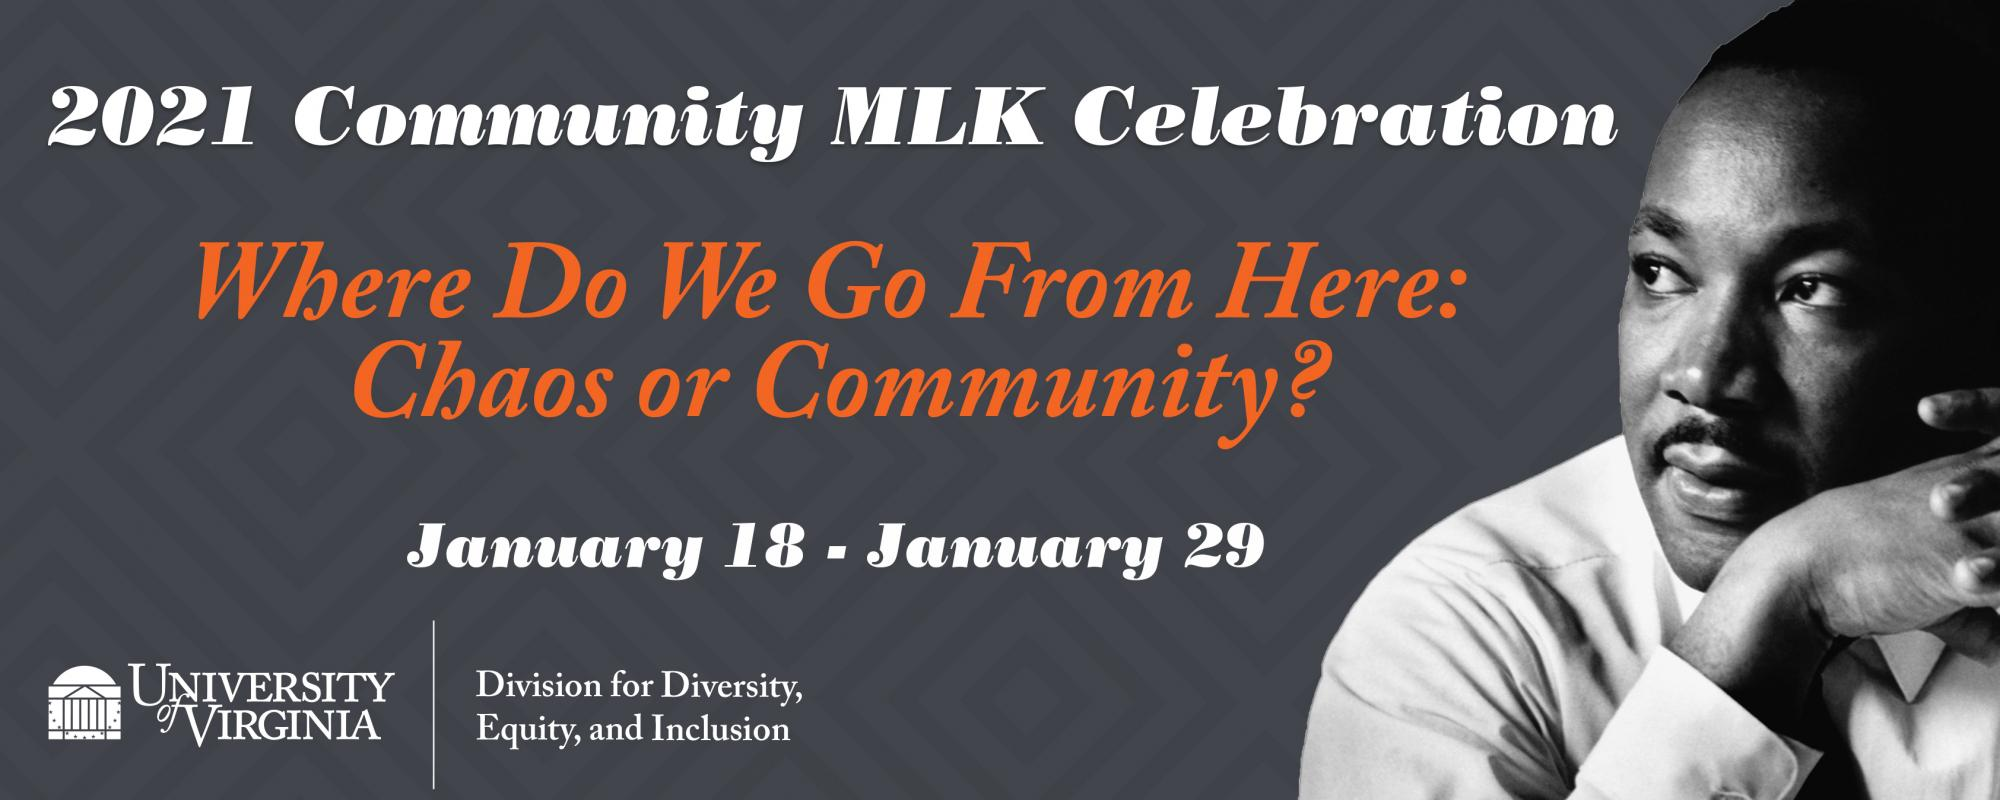 2021 Community MLK Celebration, Where Do We Go From Here: Chaos or Community? January 18 - 29